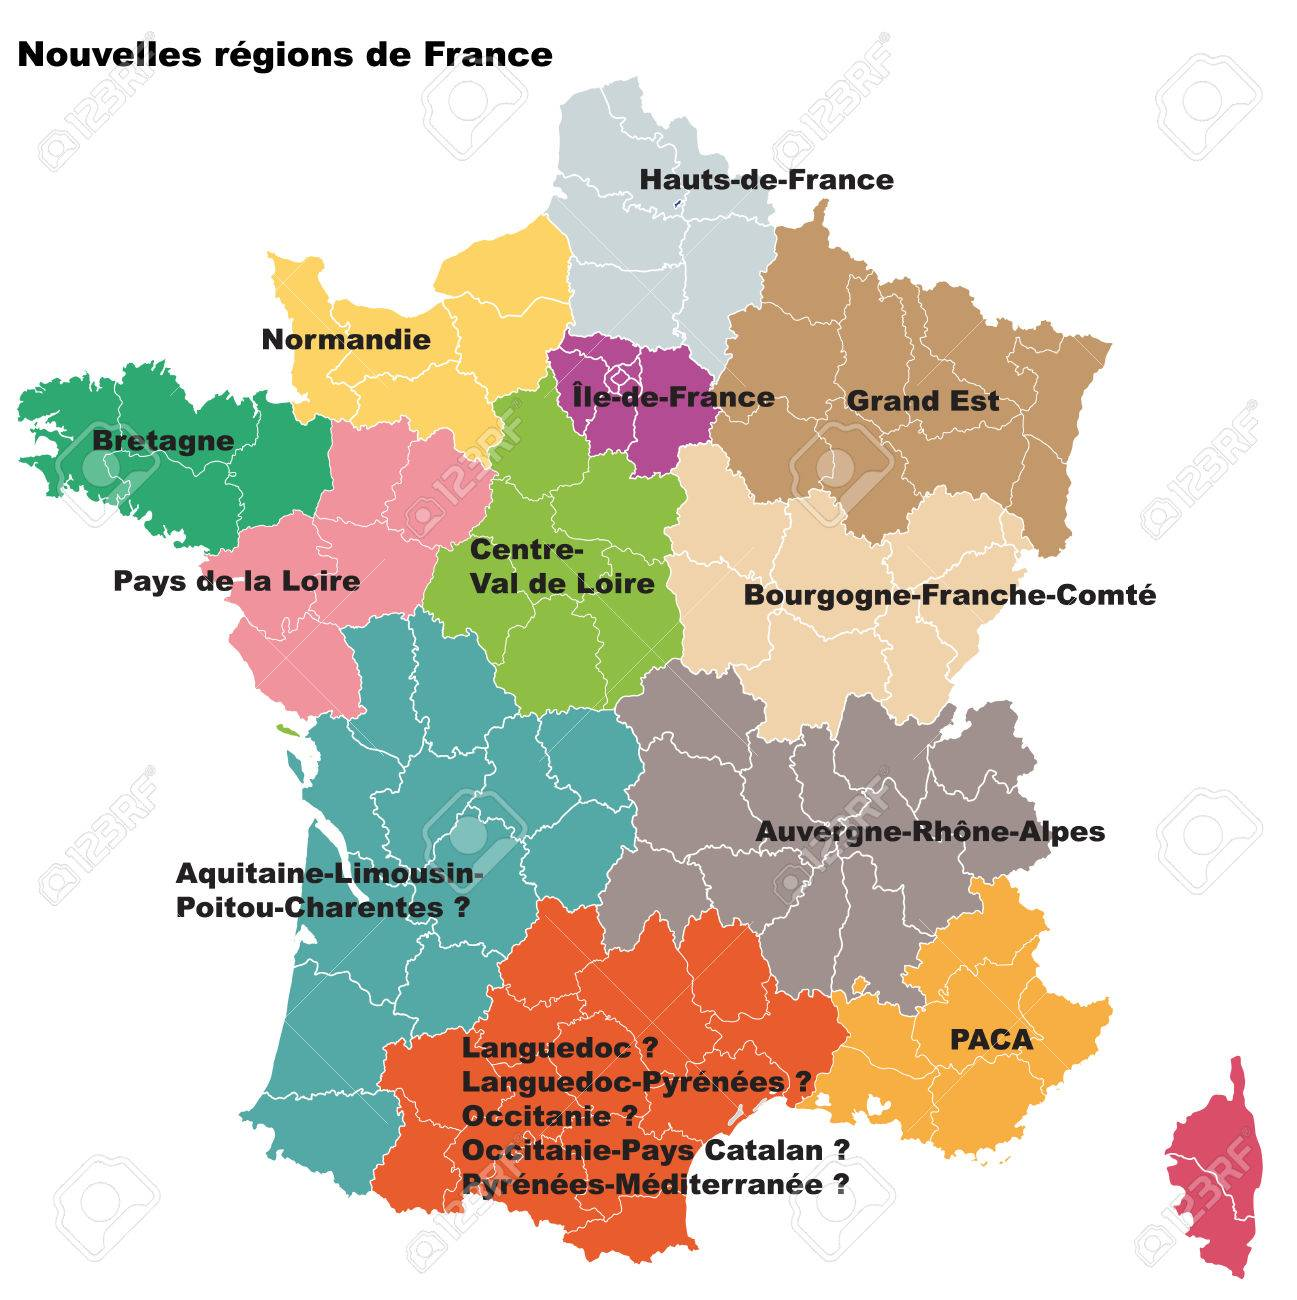 Map Of France New Regions.New French Regions Nouvelles Regions De France Separated Departments